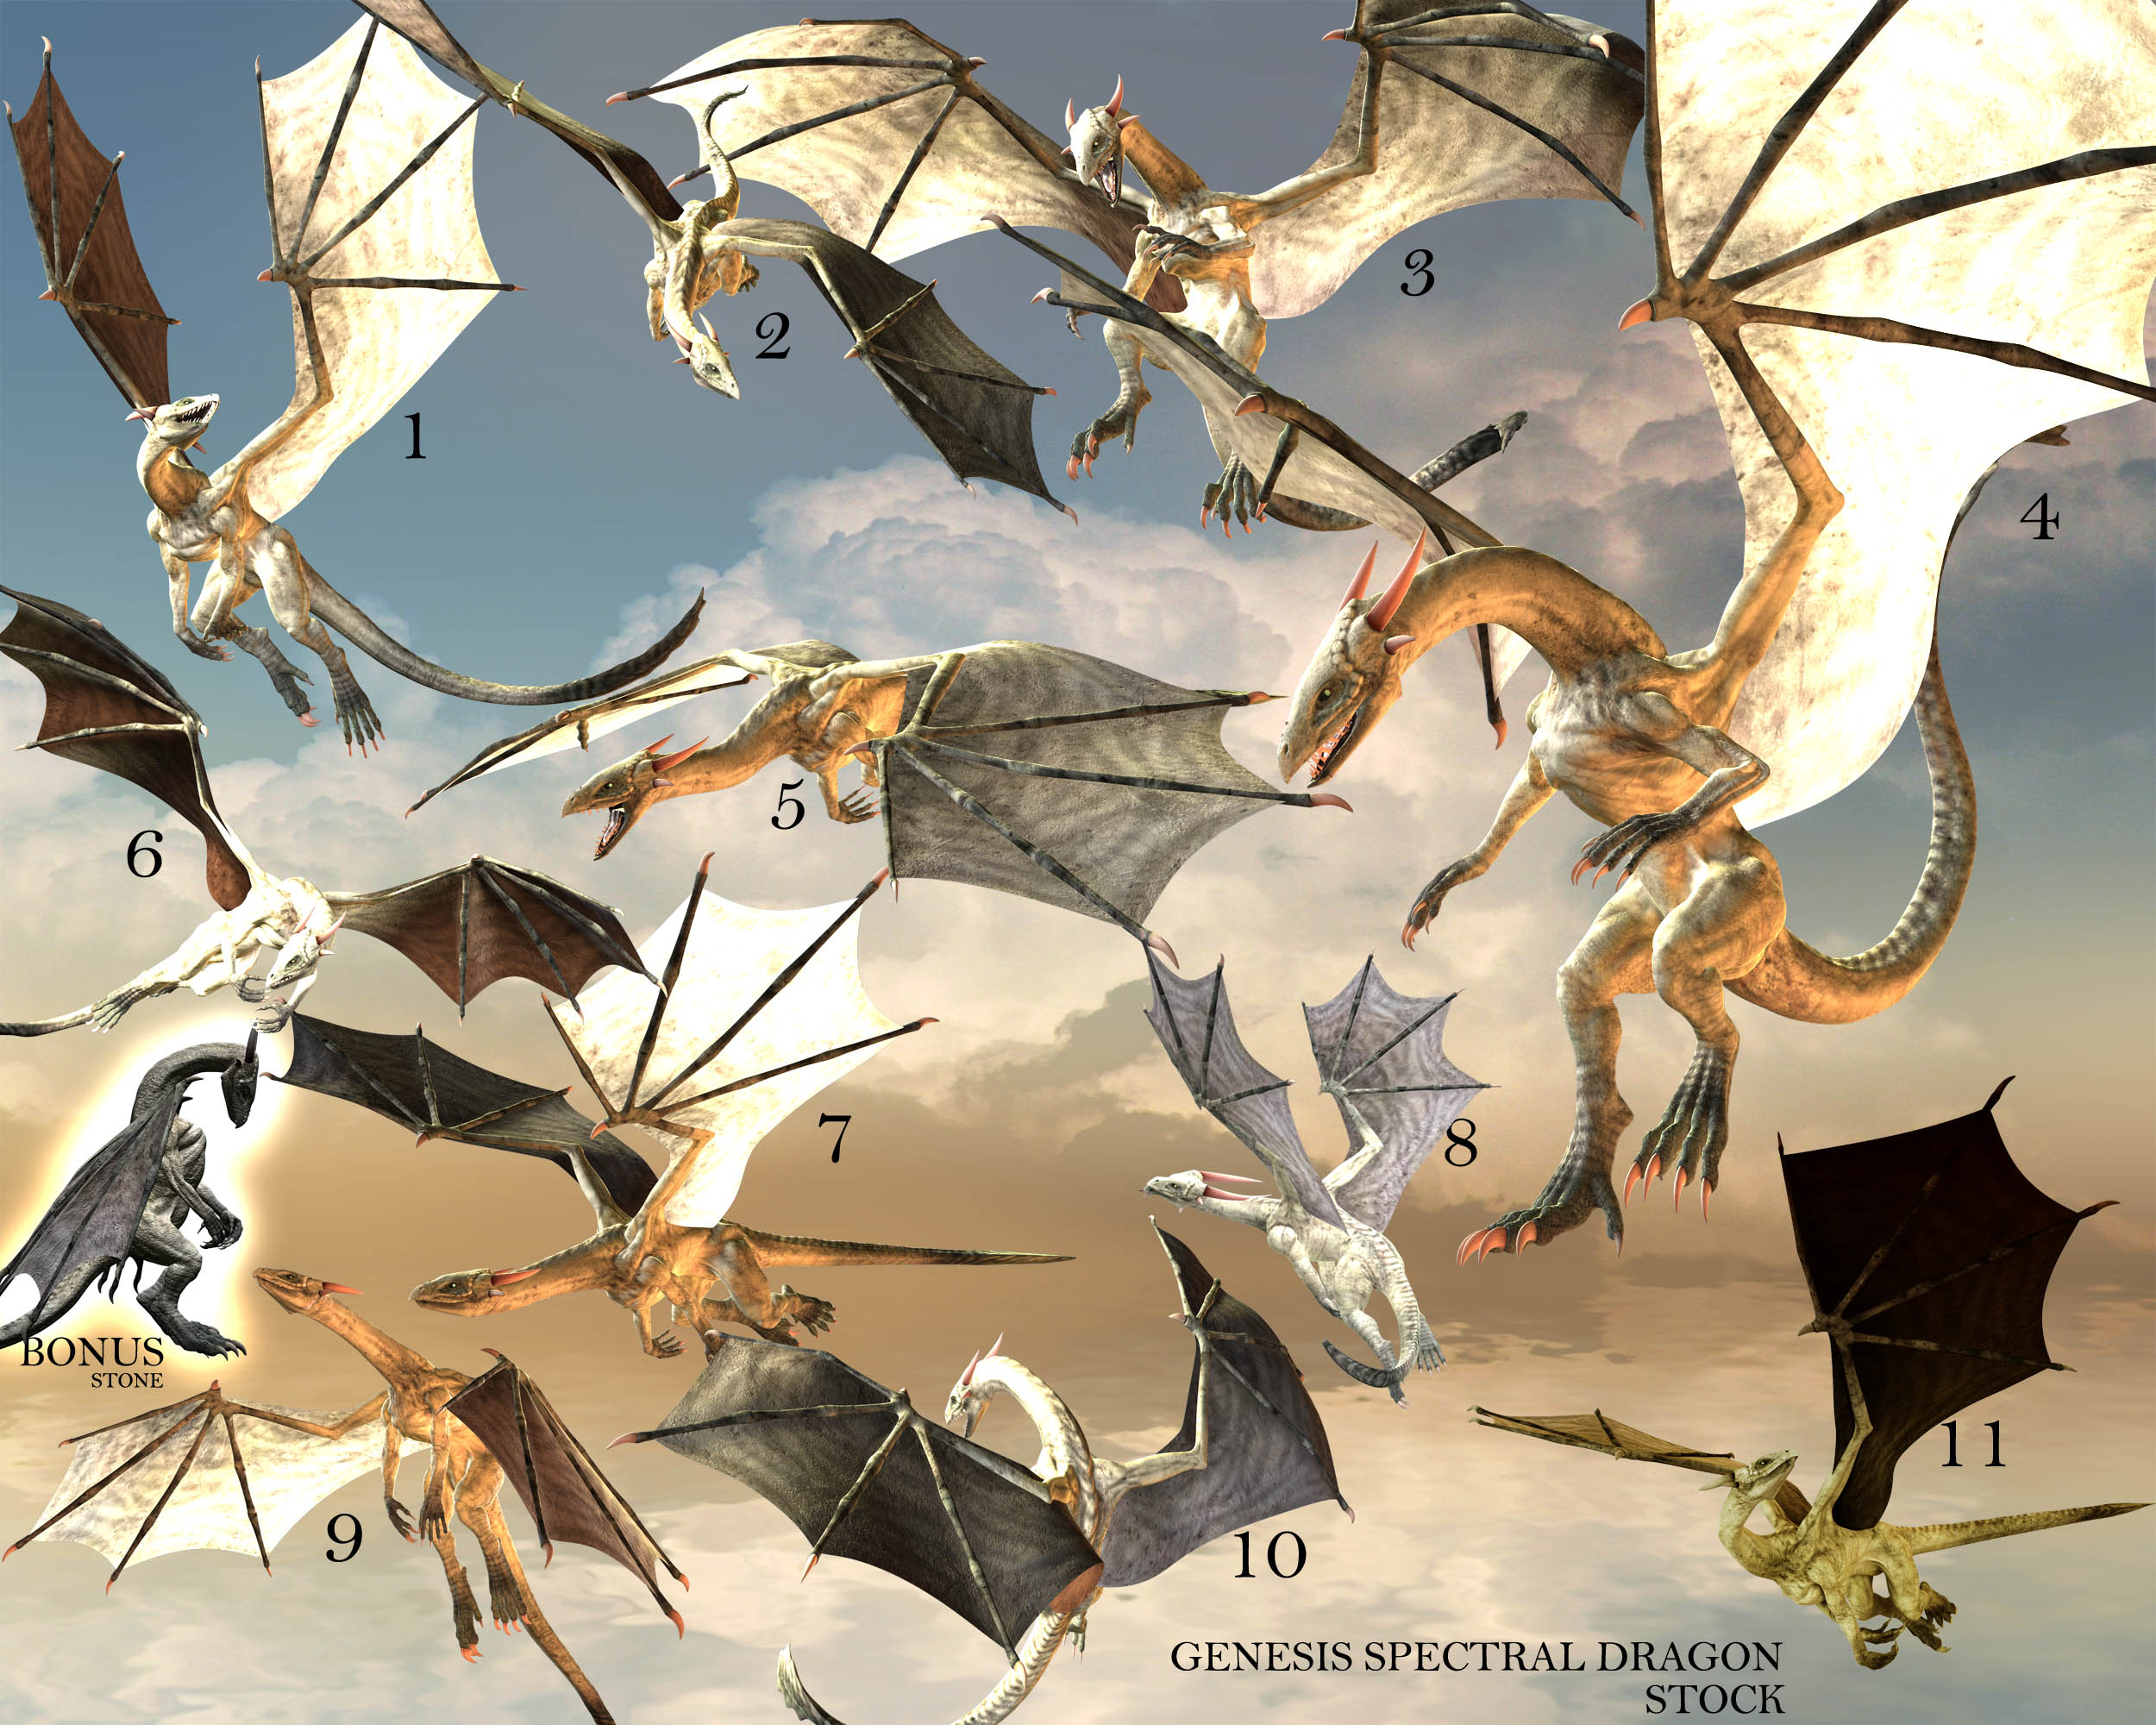 E-S genesis Spectral Dragon 11 flaying poses